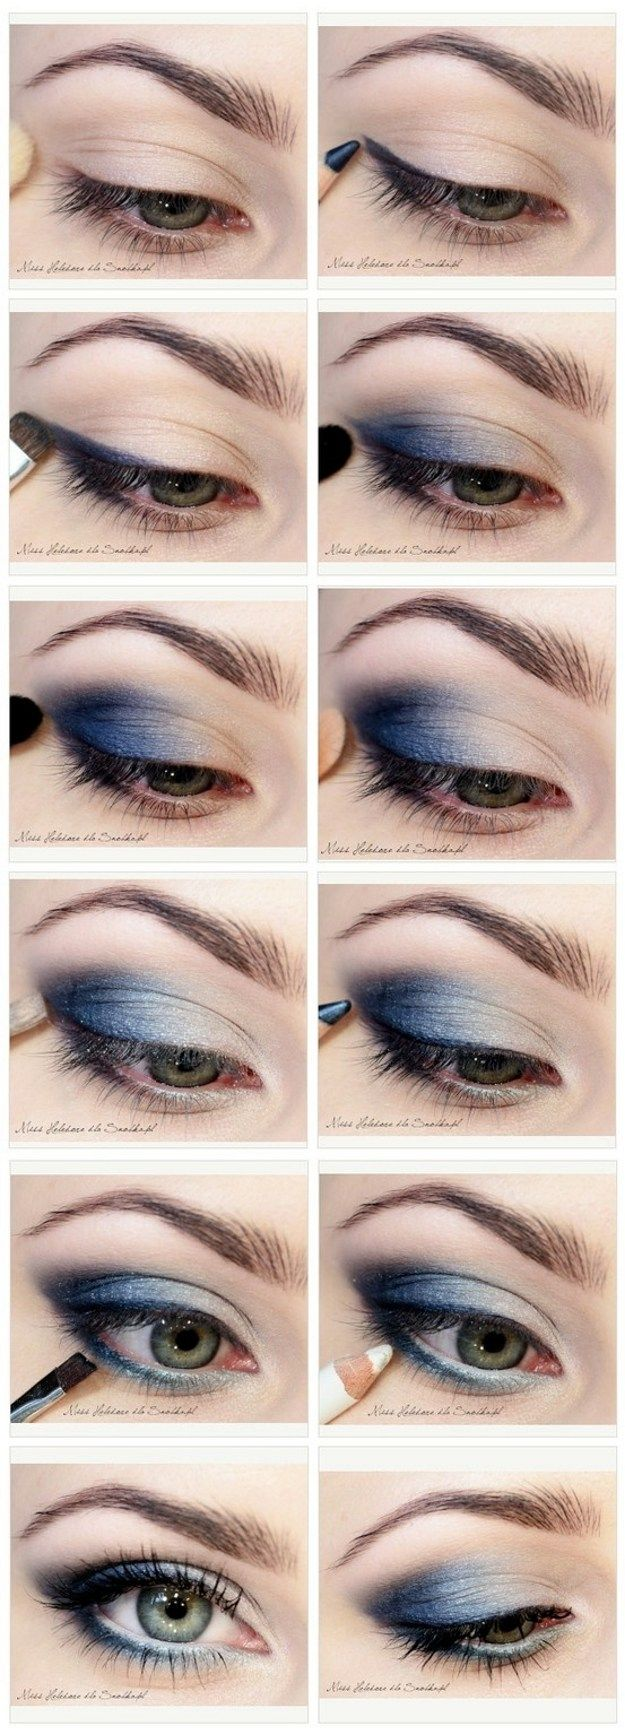 How to Do Blue Smokey Eyes | DIY Makeup by Makeup Tutorials http://www.makeuptutorials.com/makeup-tutorials-graduation-beauty-ideas